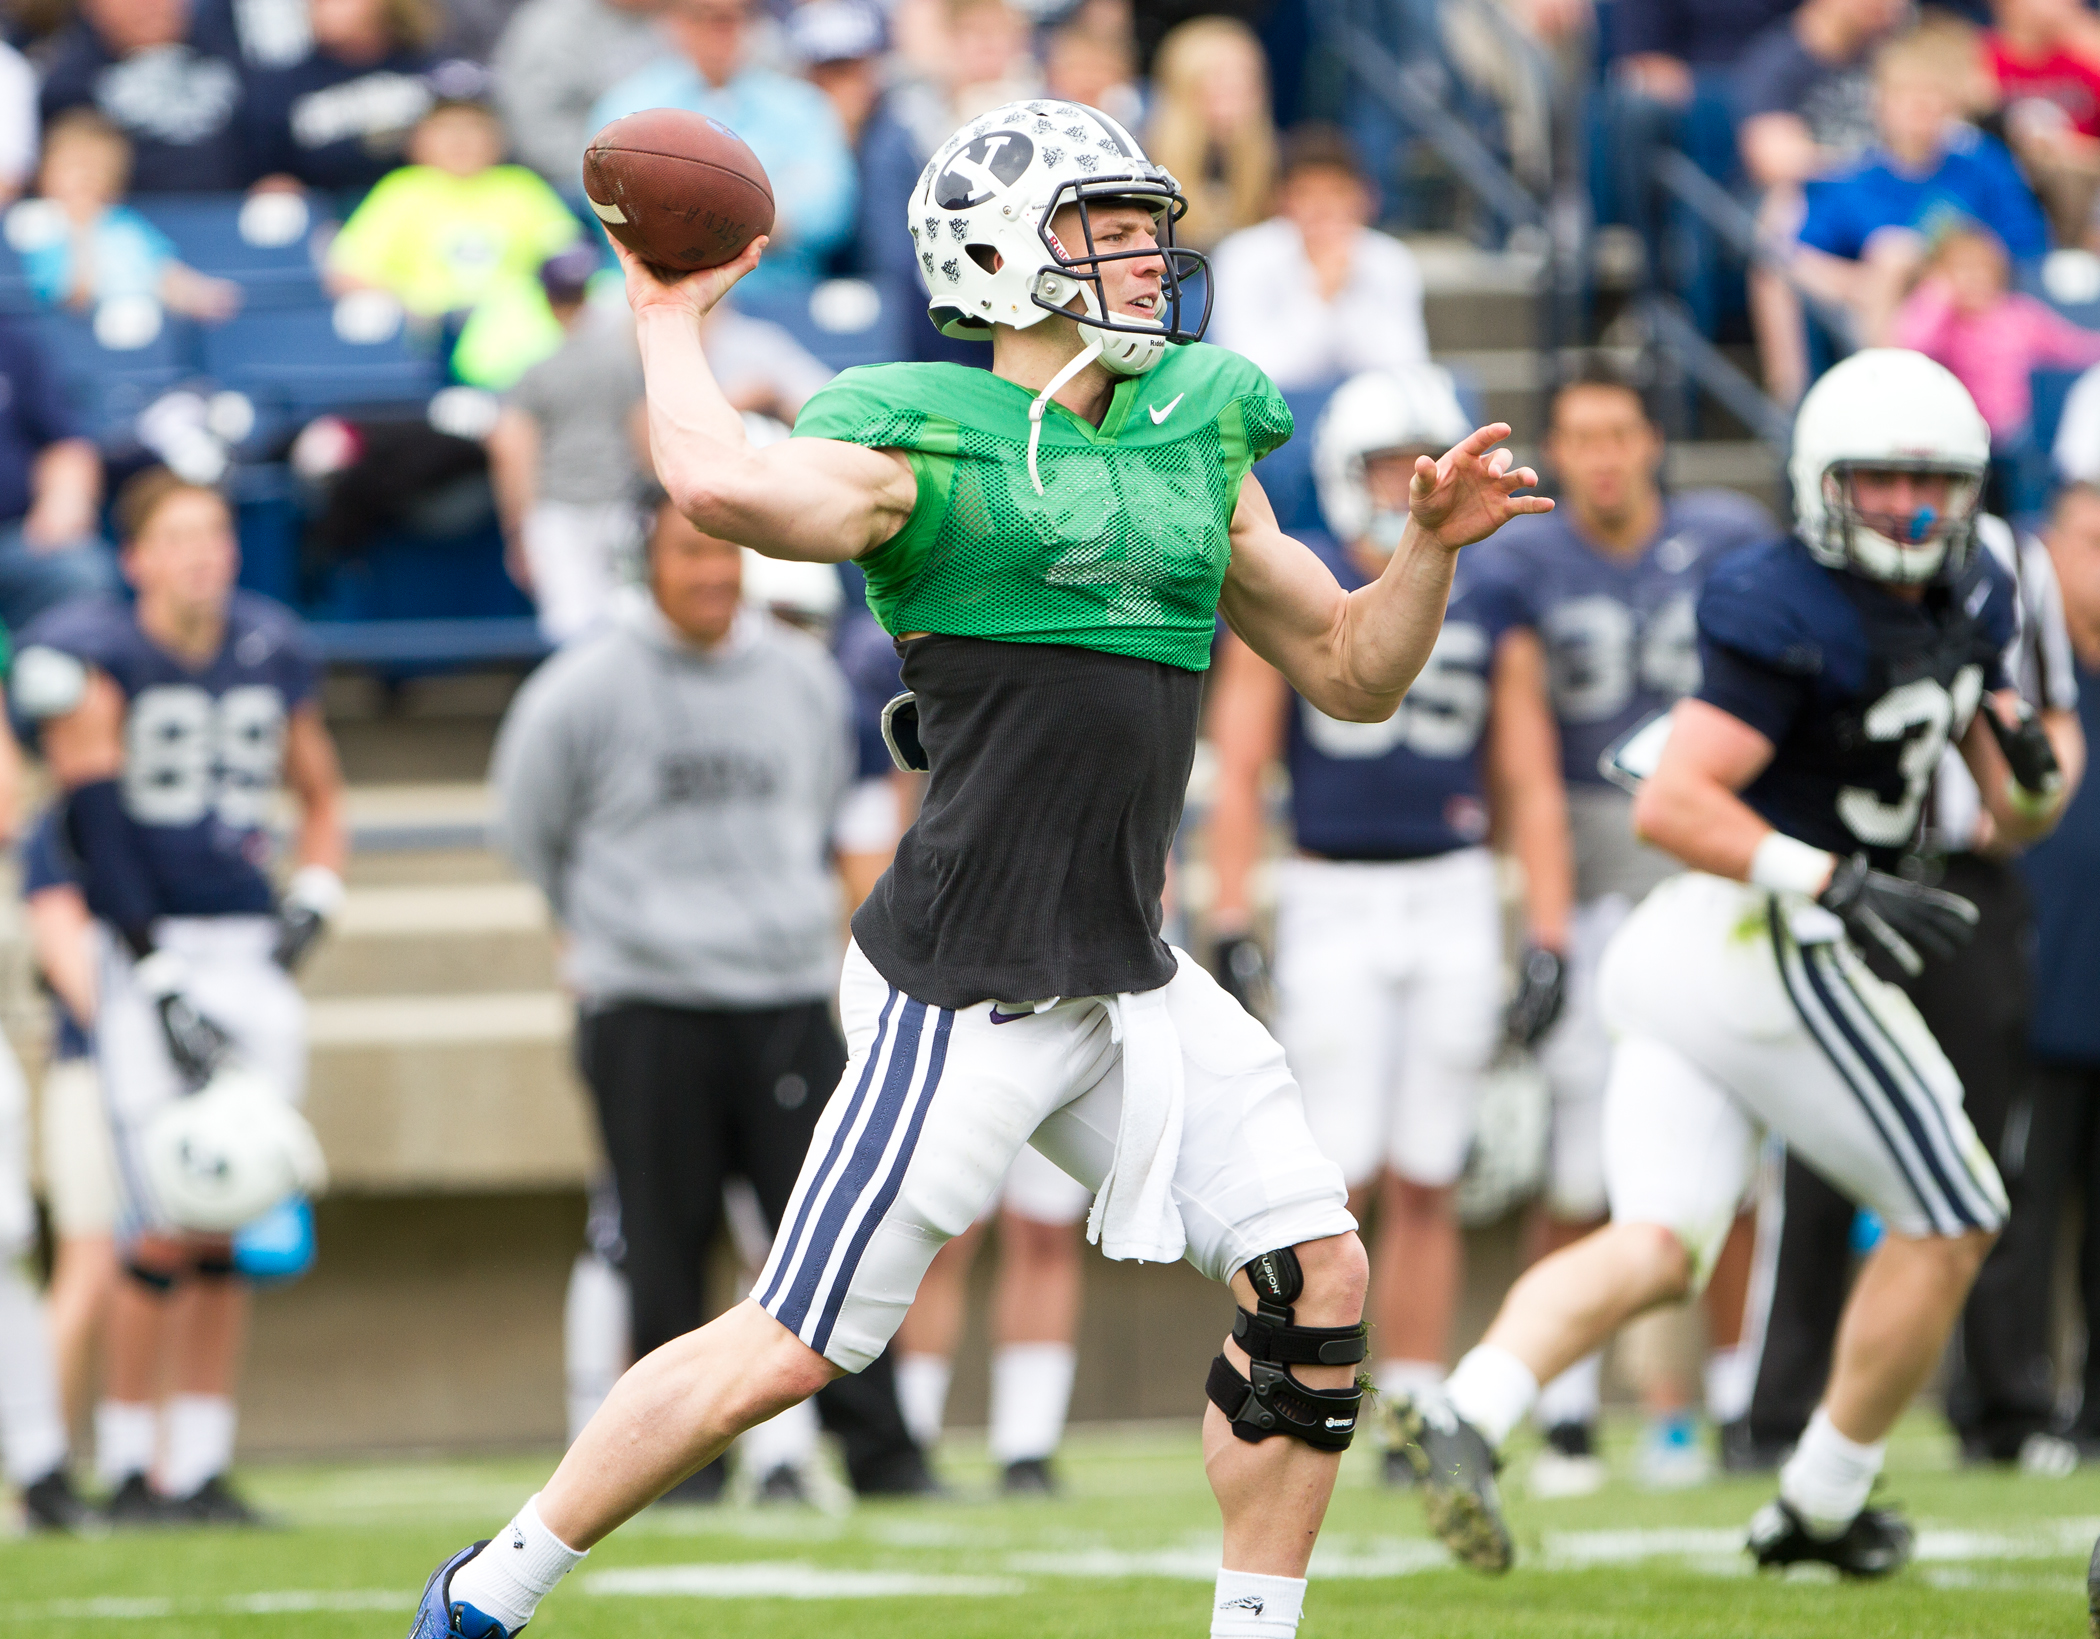 Taysom Hill throws the ball during BYU football's Spring scrimmage at LaVell Edwards Stadium. (Sarah Hill)